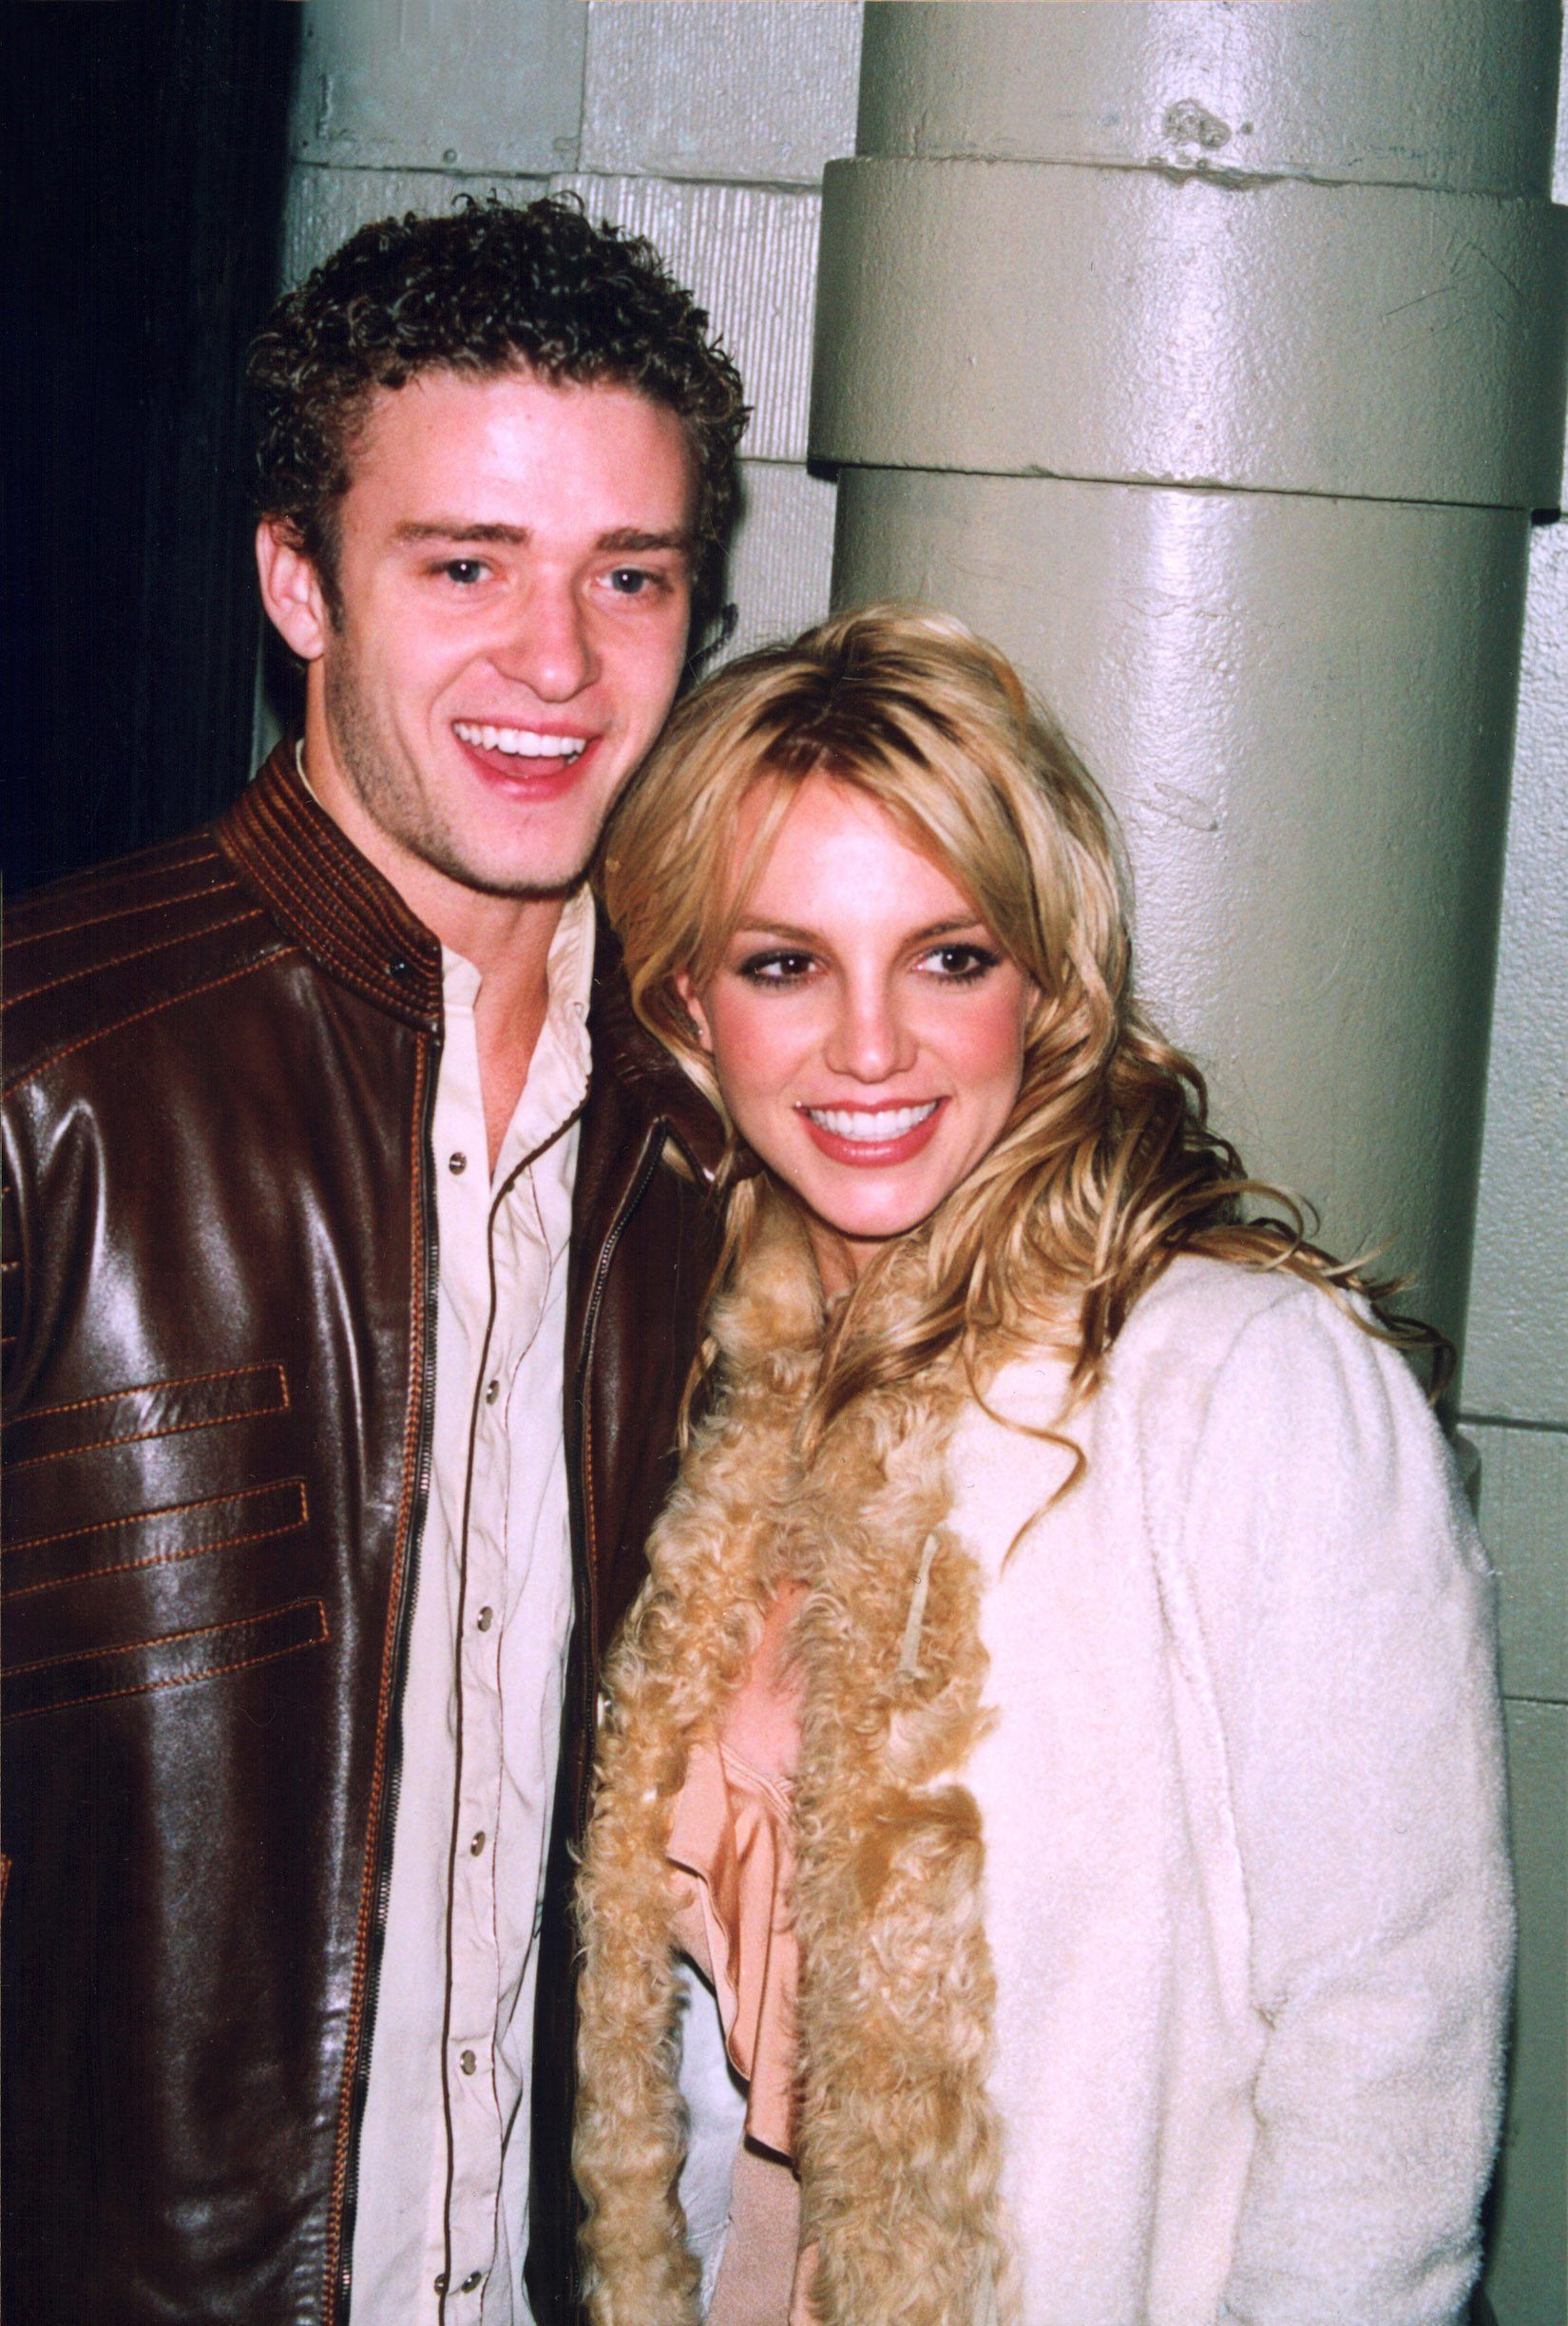 Things You Didn't Know About Britney Spears And Justin Timberlake's Relationship - Fame10